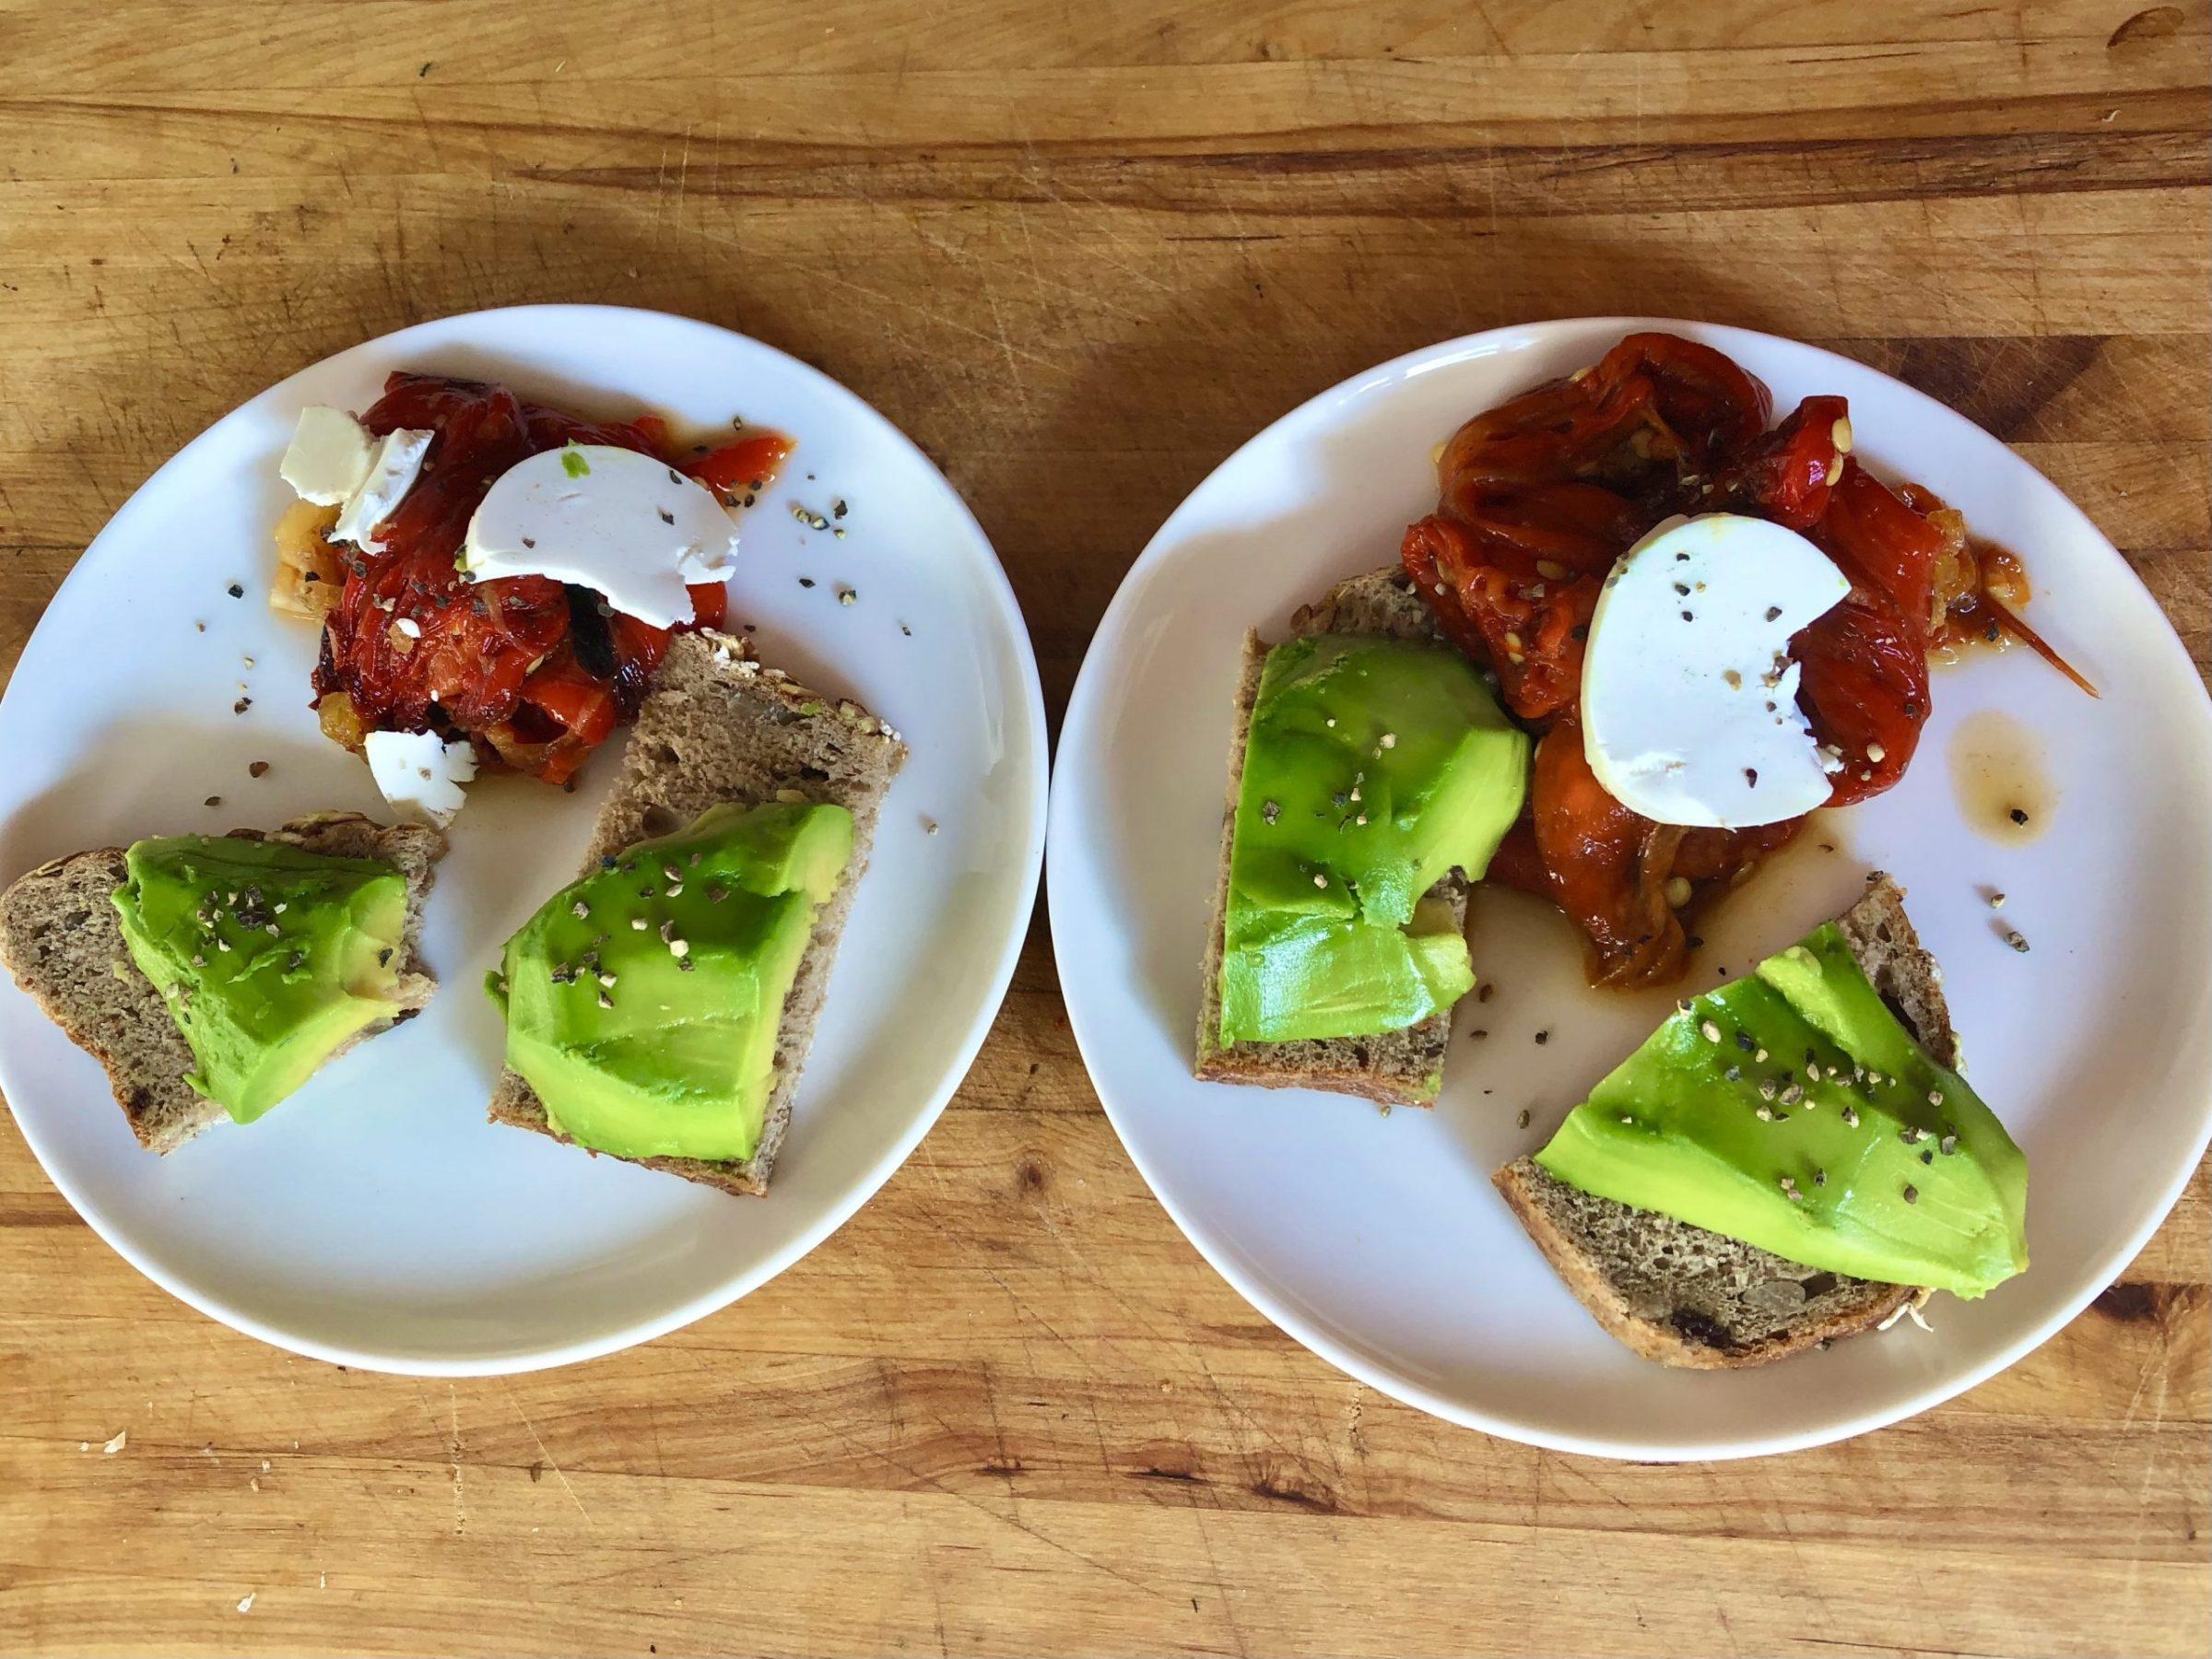 Tapas: Rye bread toast with avocado and Romano peppers